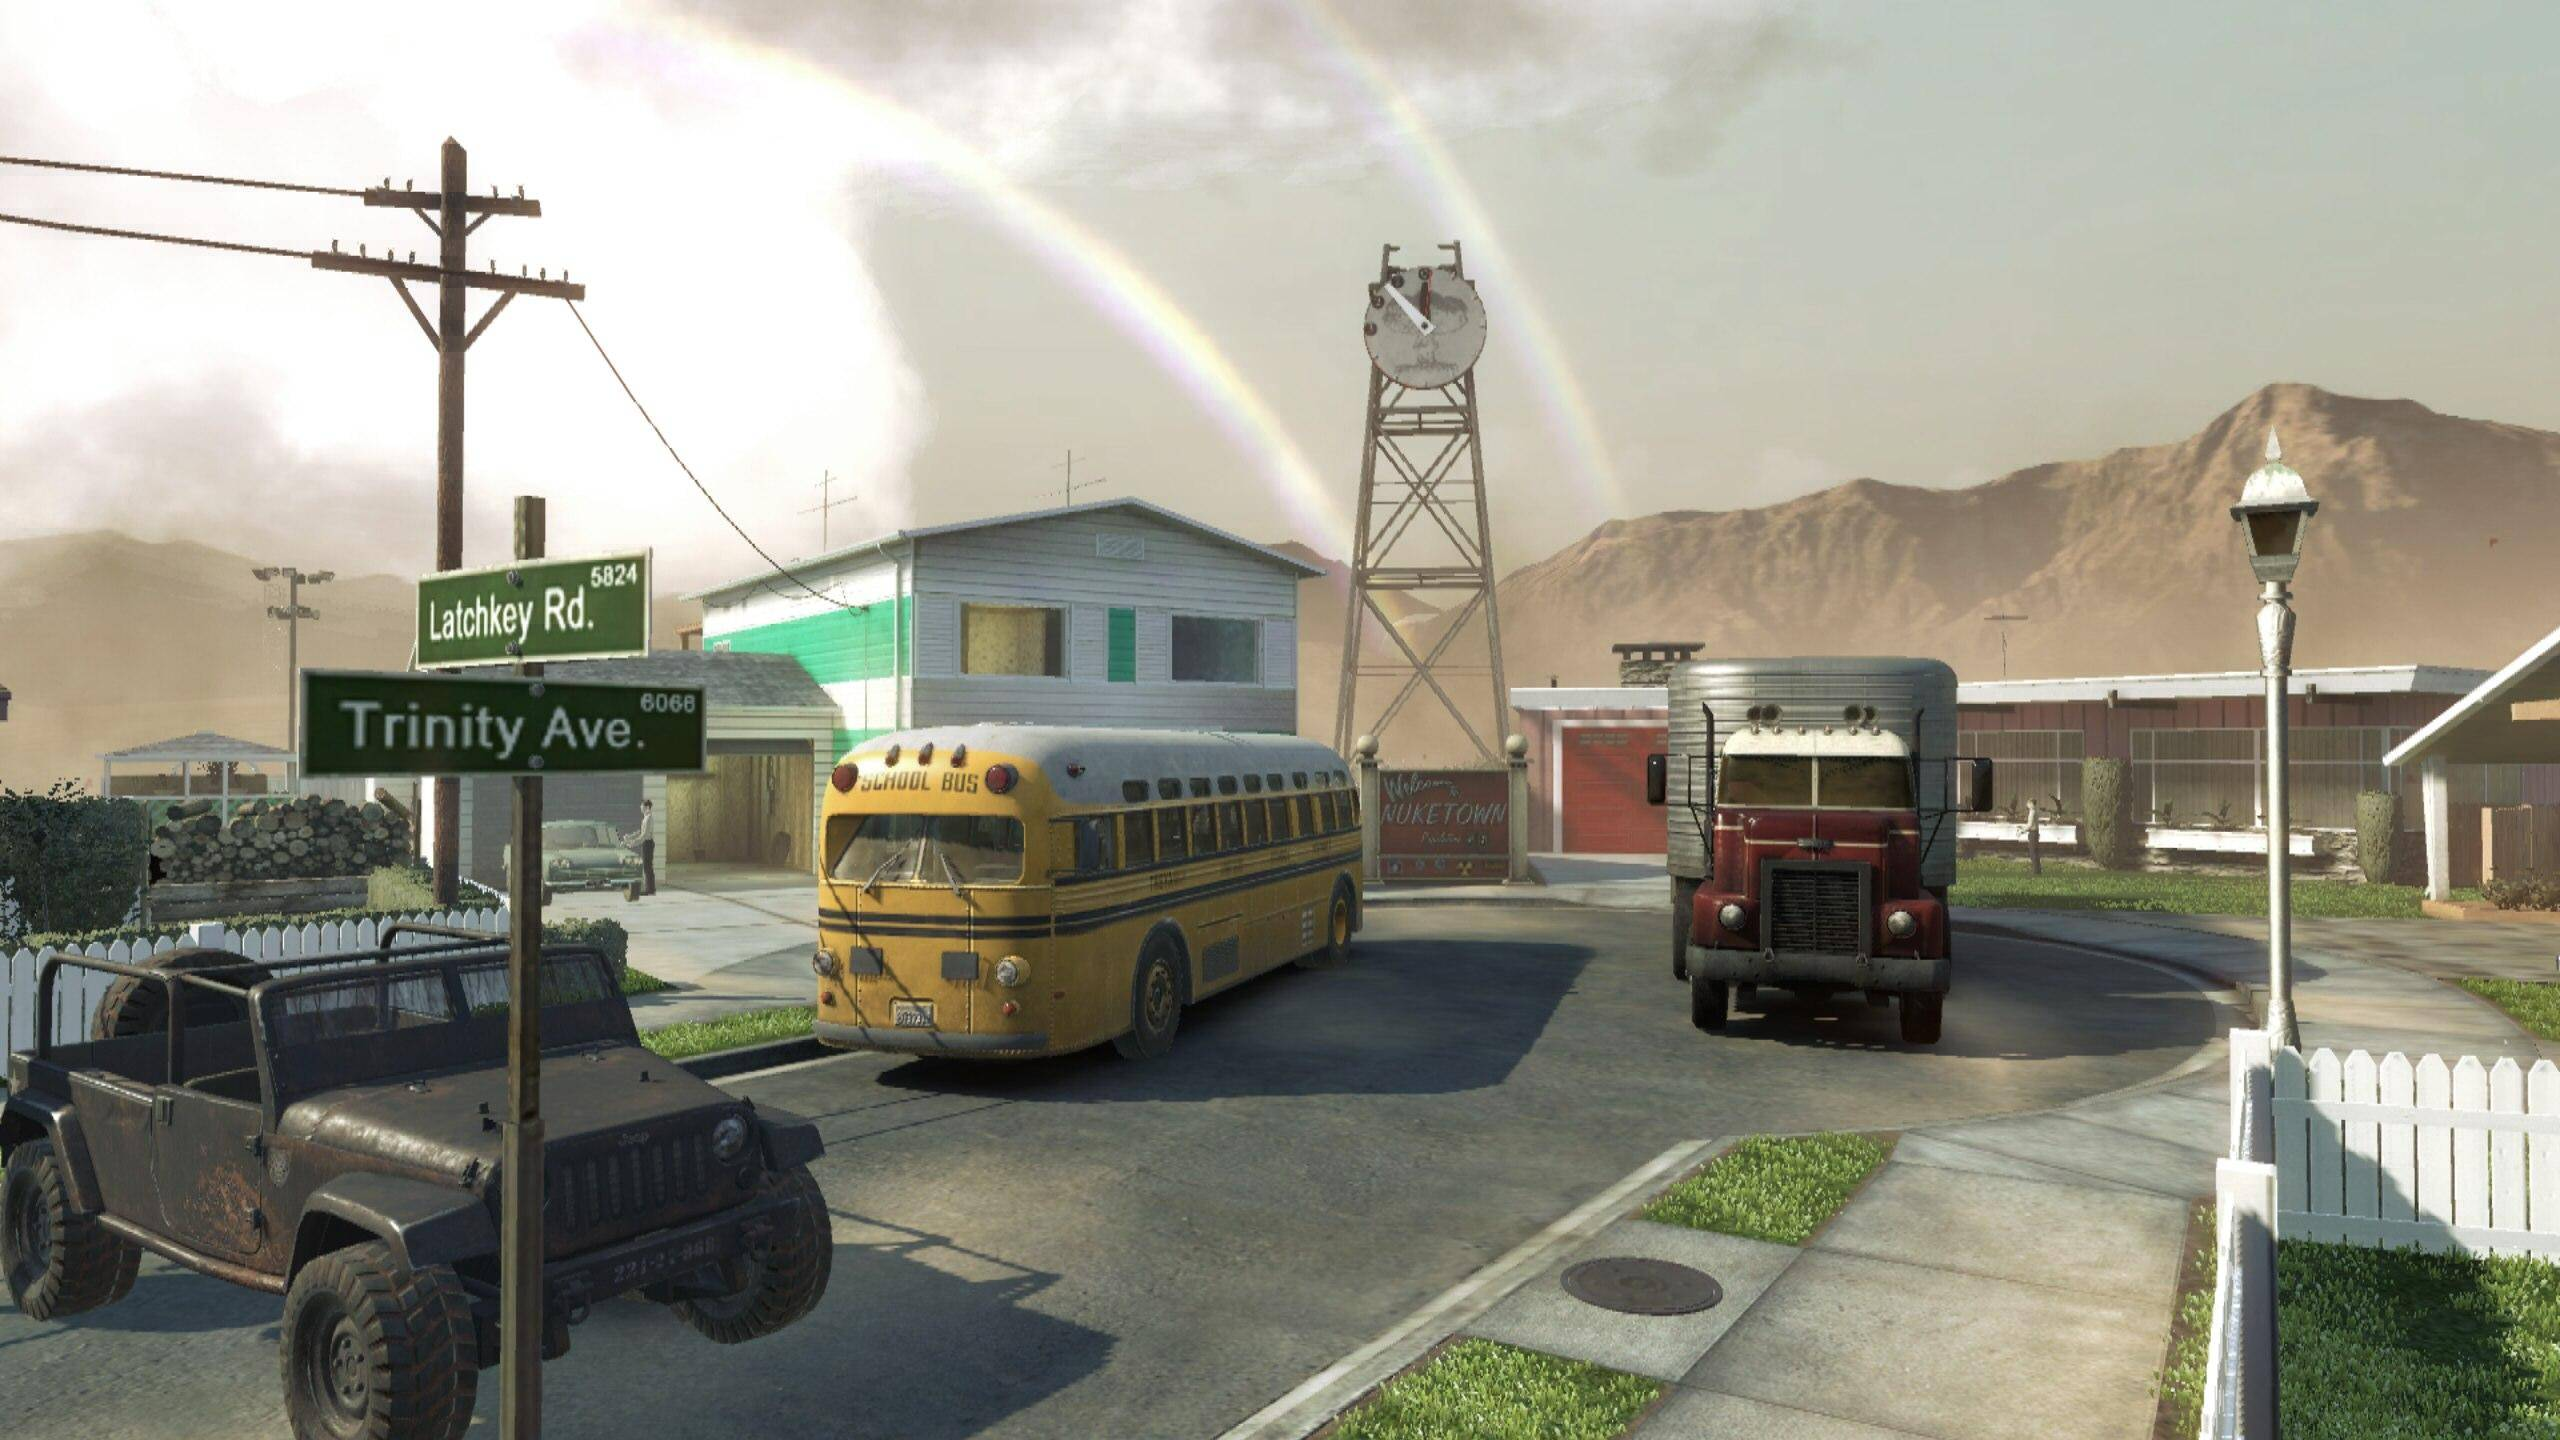 Call Of Duty Black Ops Maps on